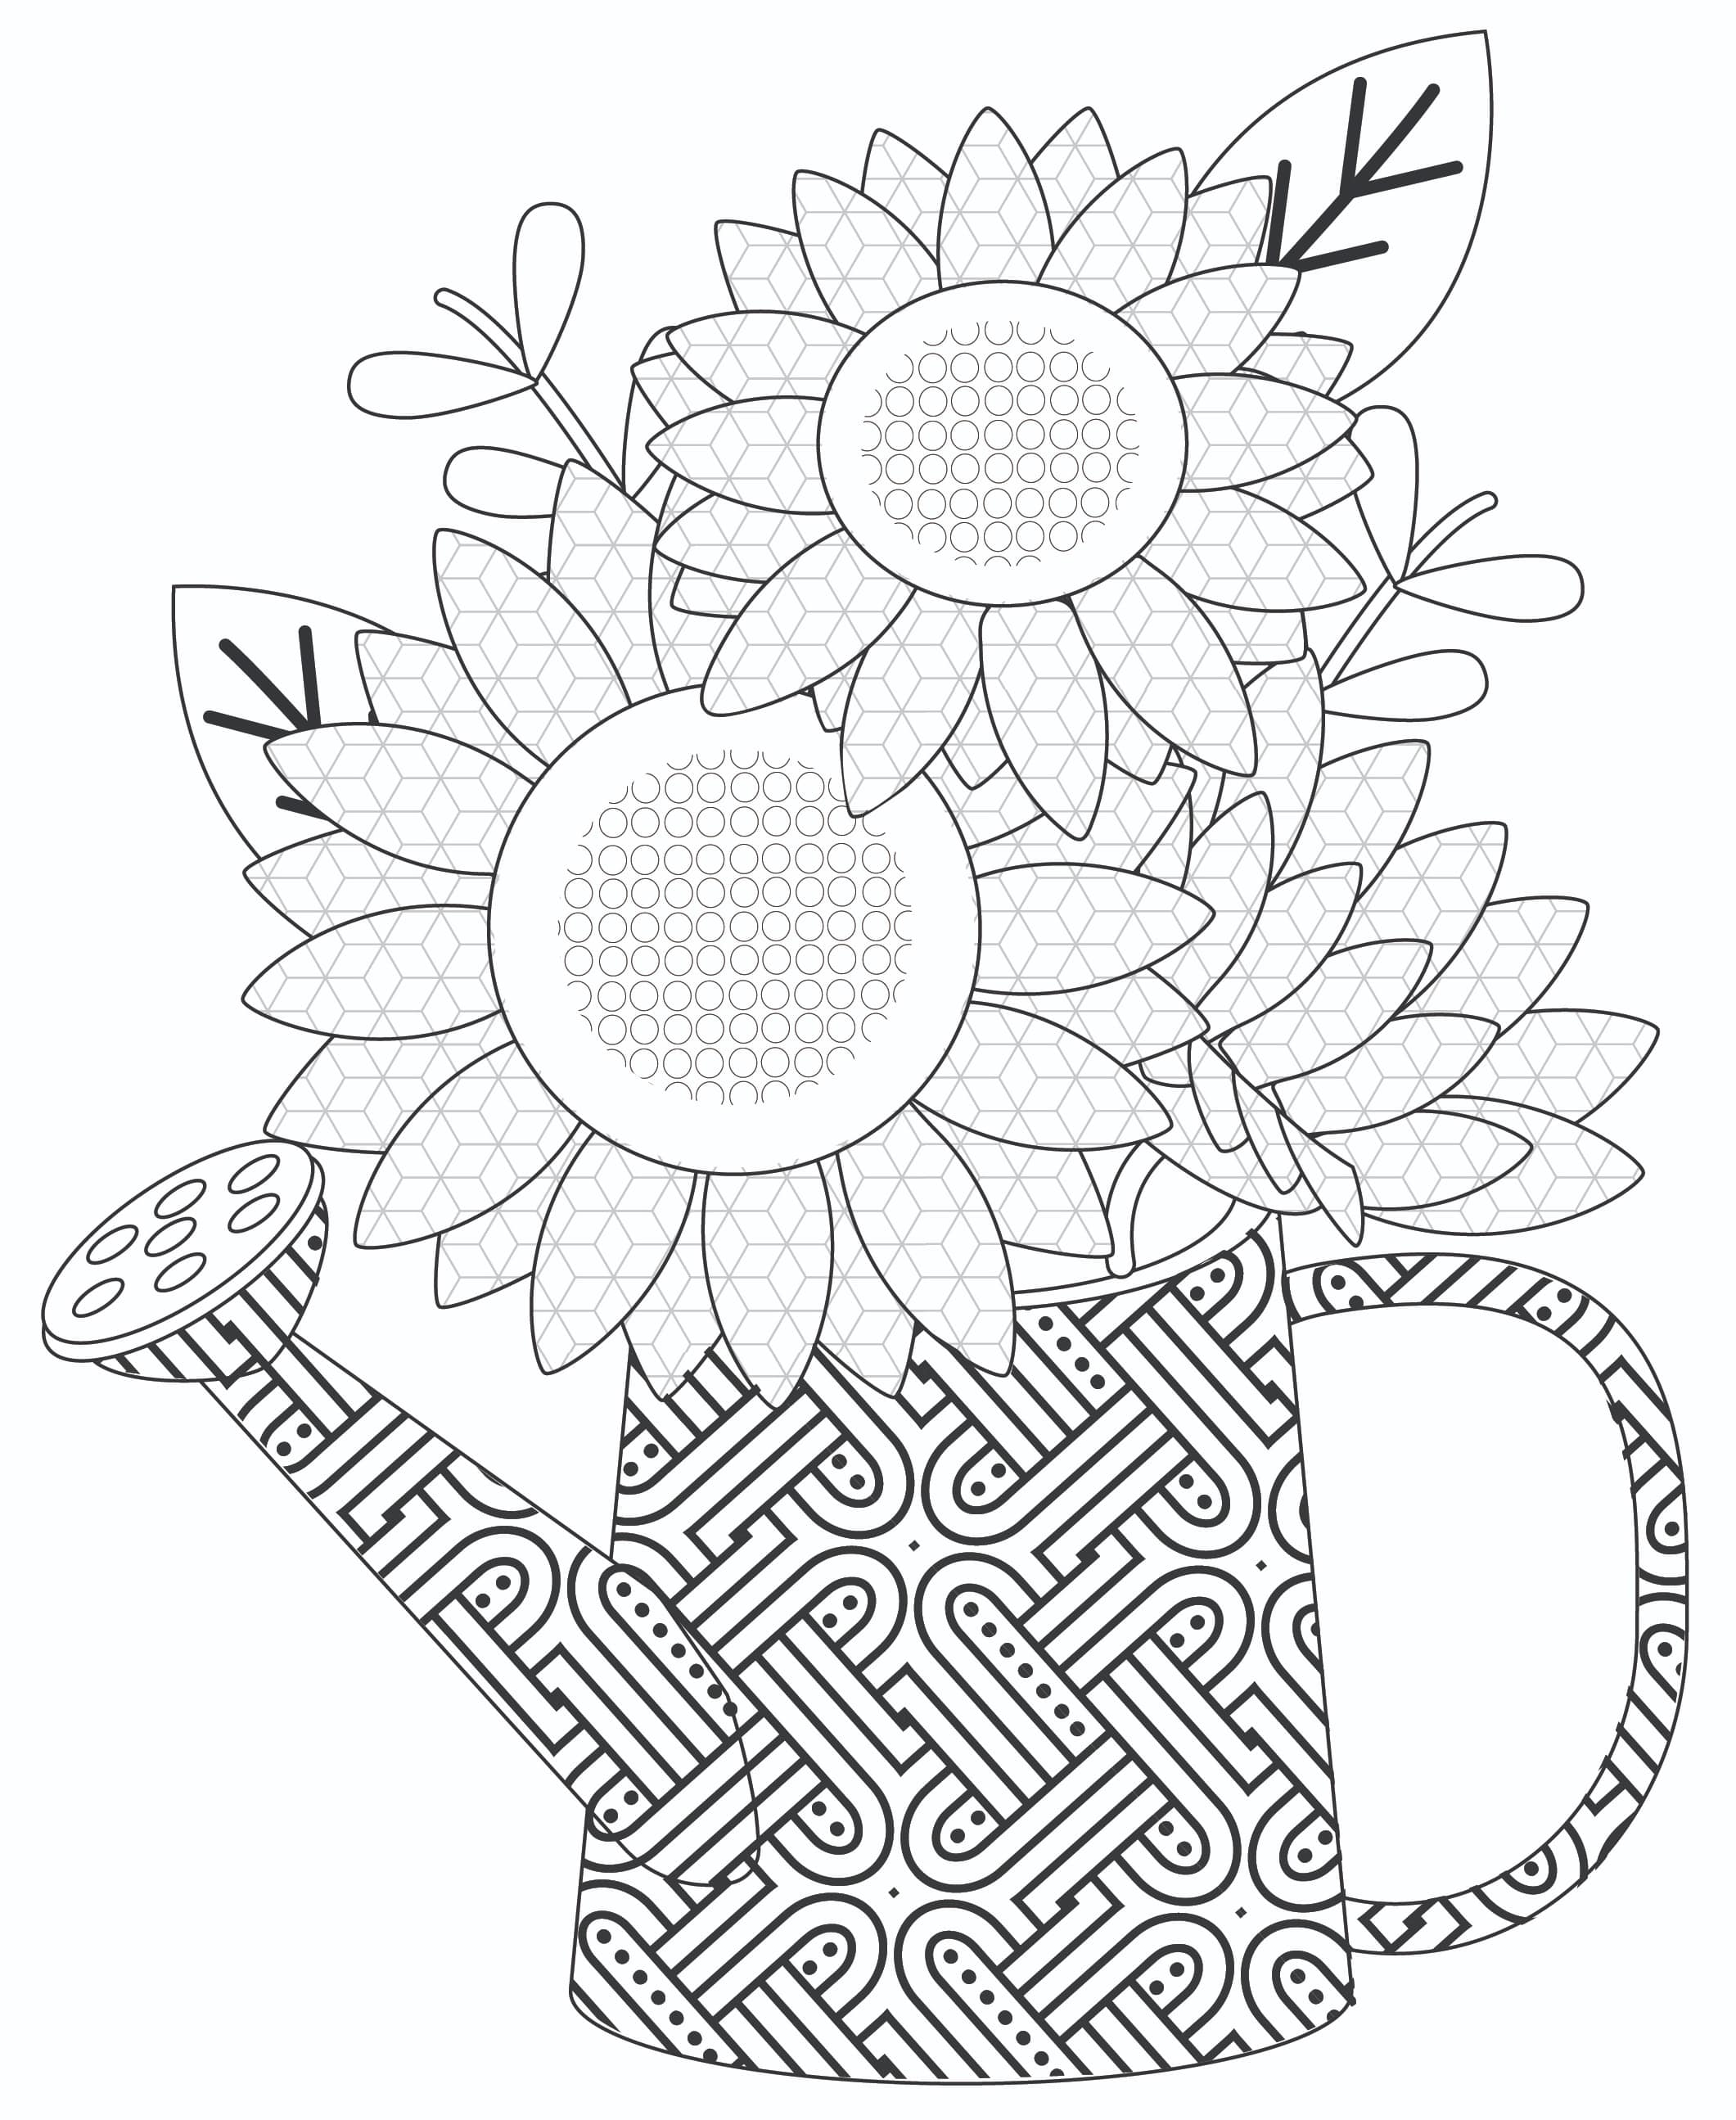 This intricate sunflower bouquet in a watering can makes easy flower coloring pages for adults!